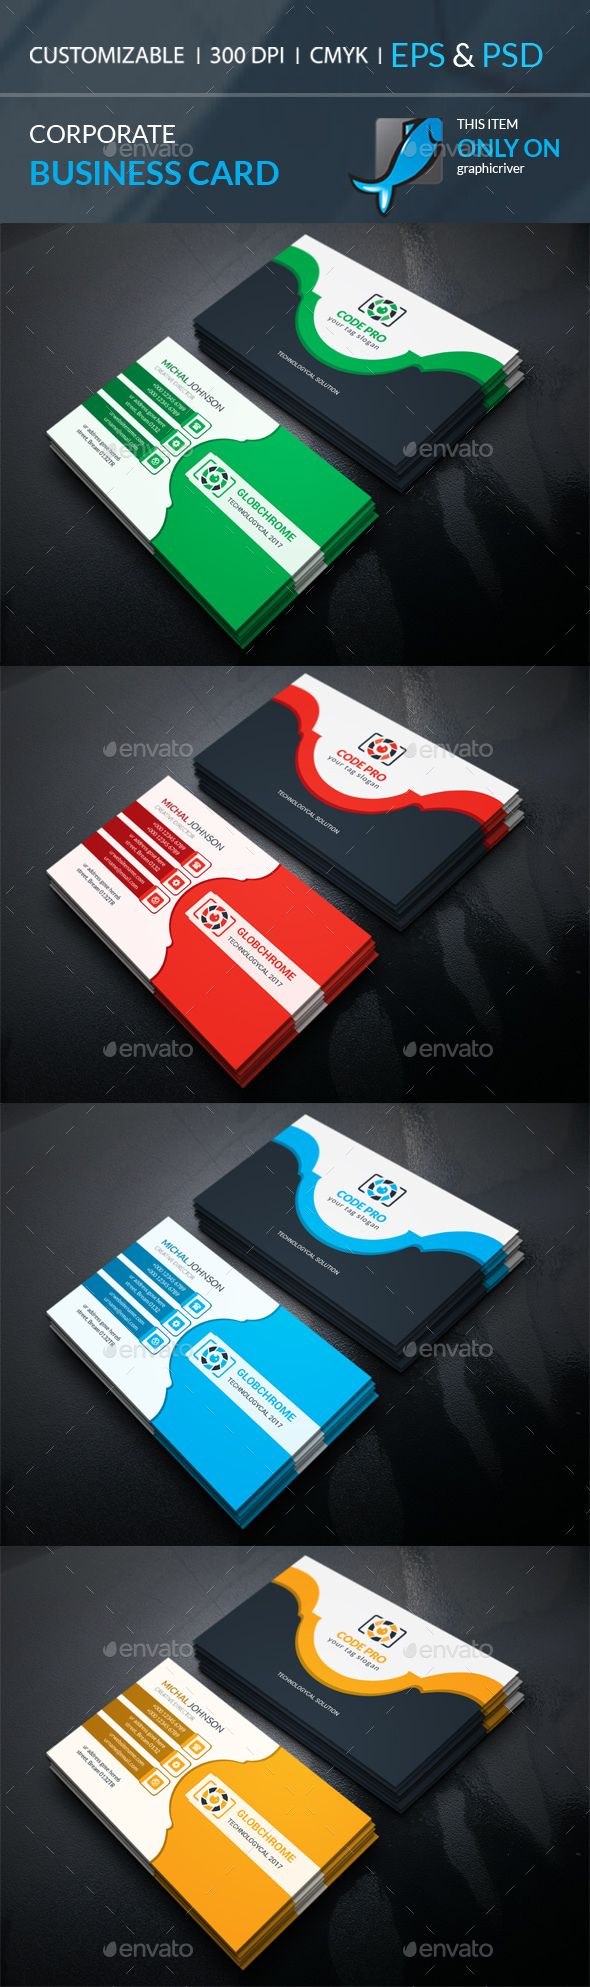 Business card photoshop psd cmyk textfont and color editable business card photoshop psd cmyk textfont and color editable with 4 reheart Image collections